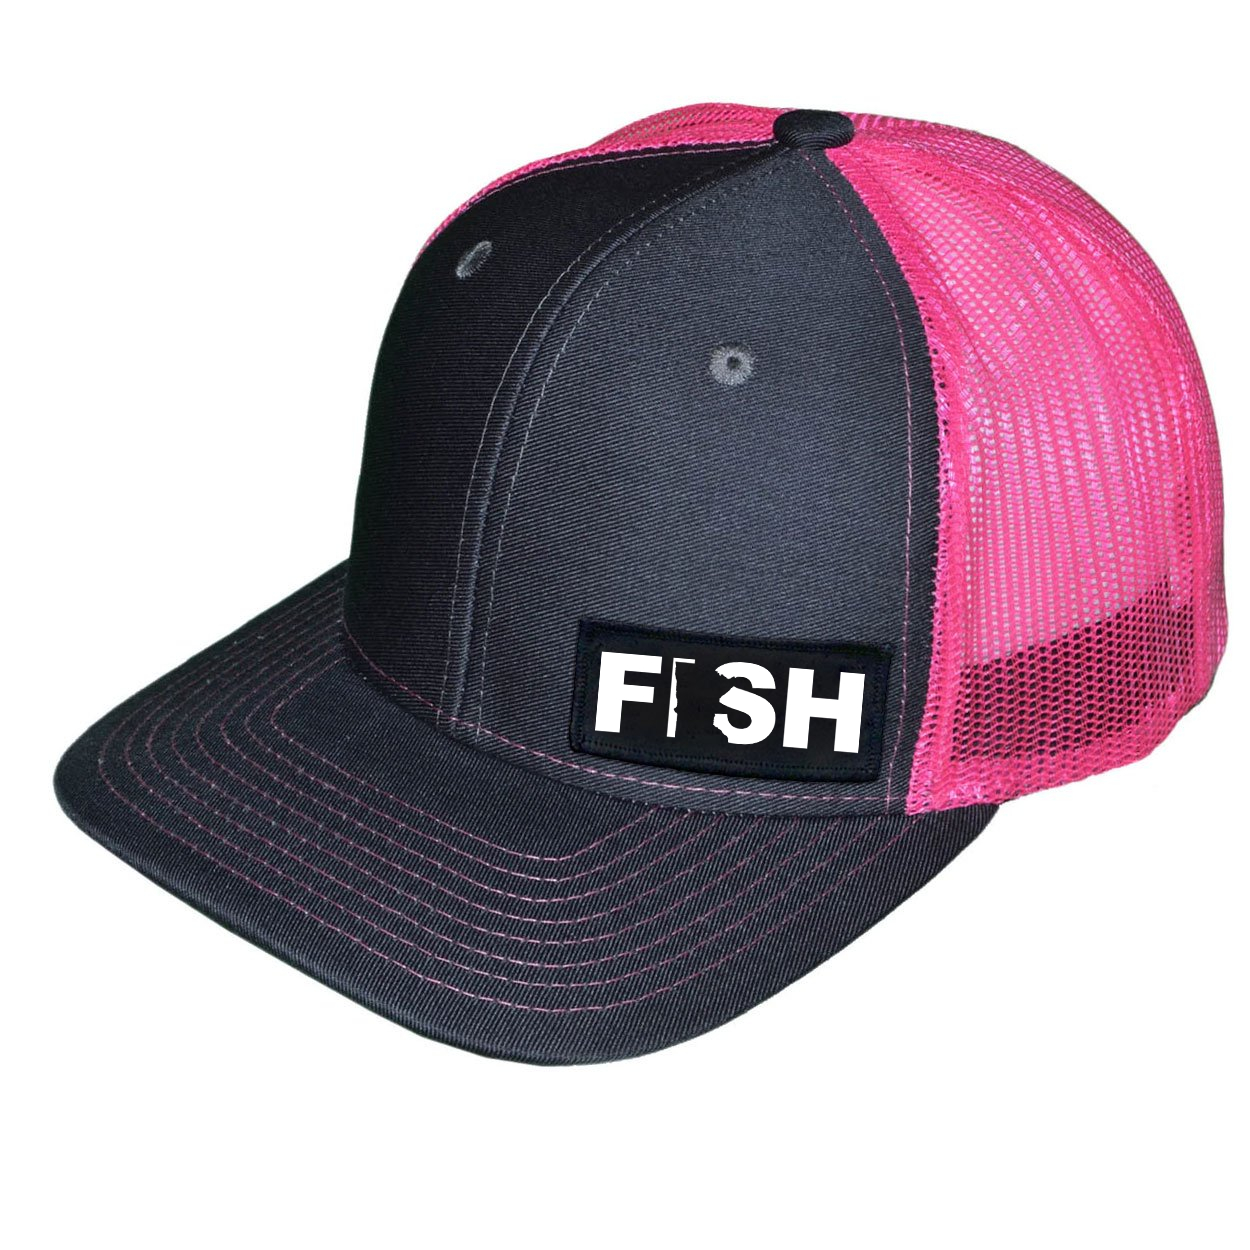 Fish Minnesota Night Out Woven Patch Snapback Trucker Hat Dark Gray/Neon Pink (White Logo)